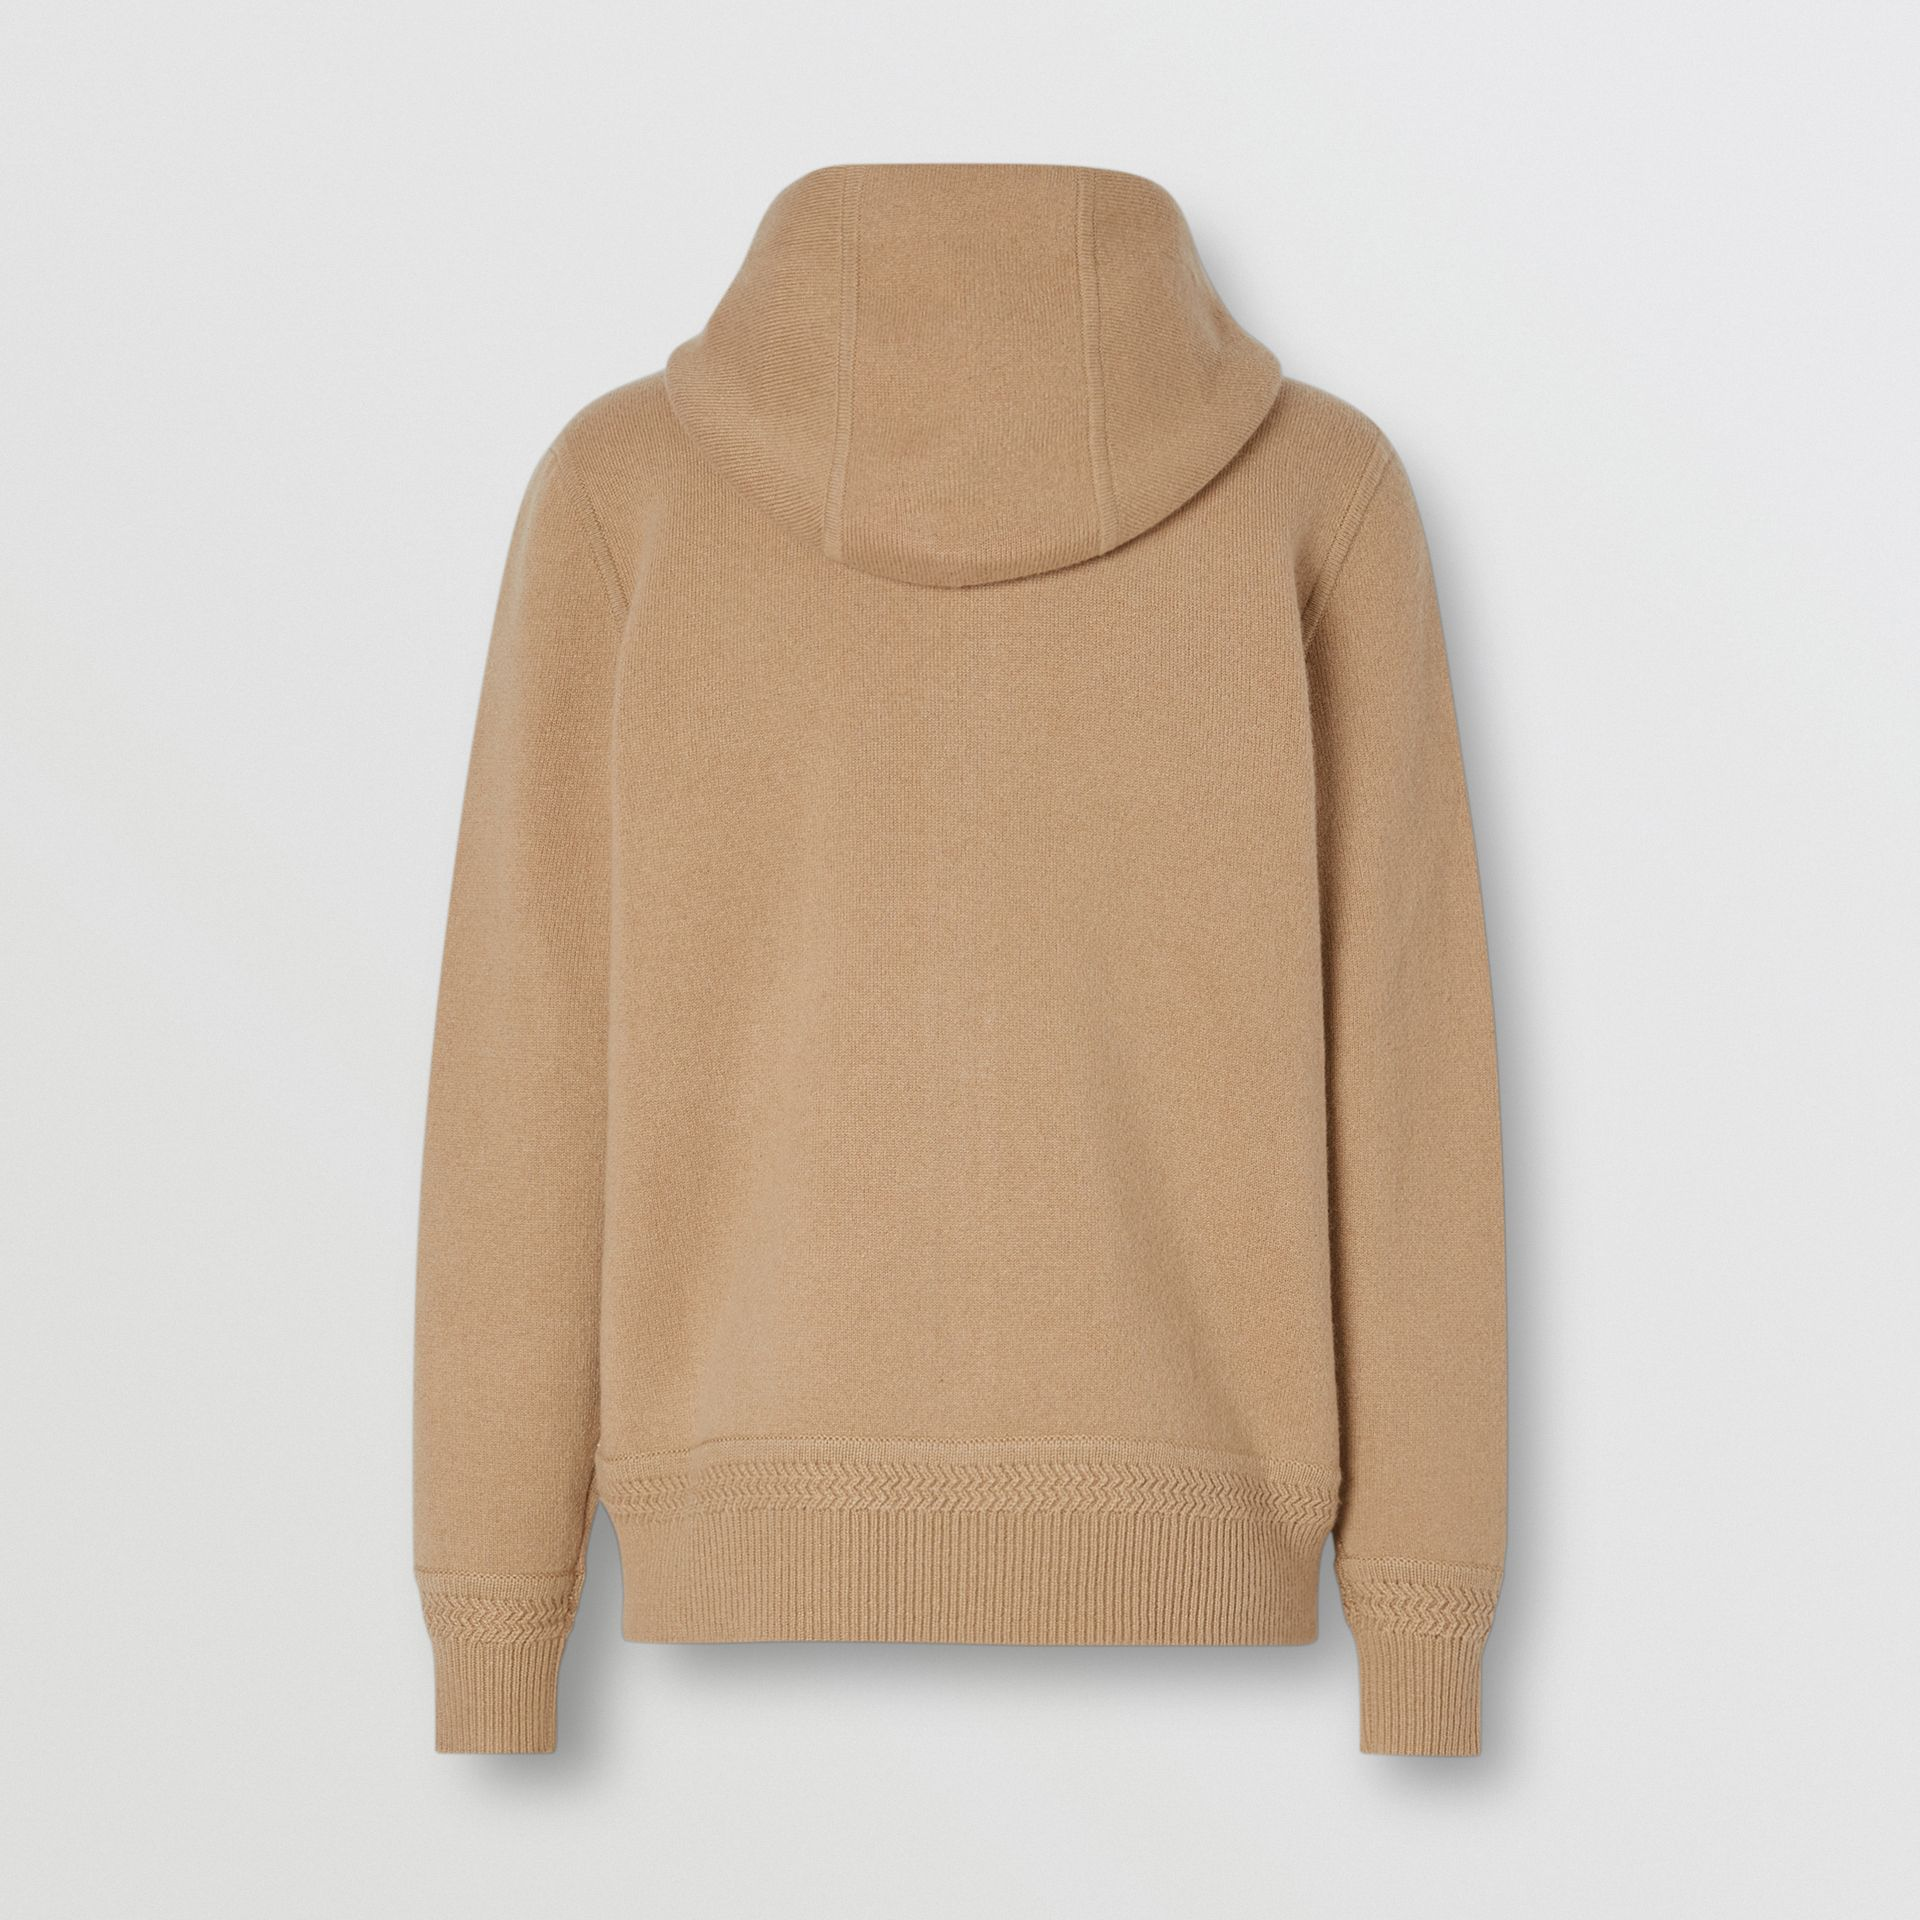 Embroidered Logo Cashmere Hooded Top in Archive Beige - Women | Burberry - gallery image 5